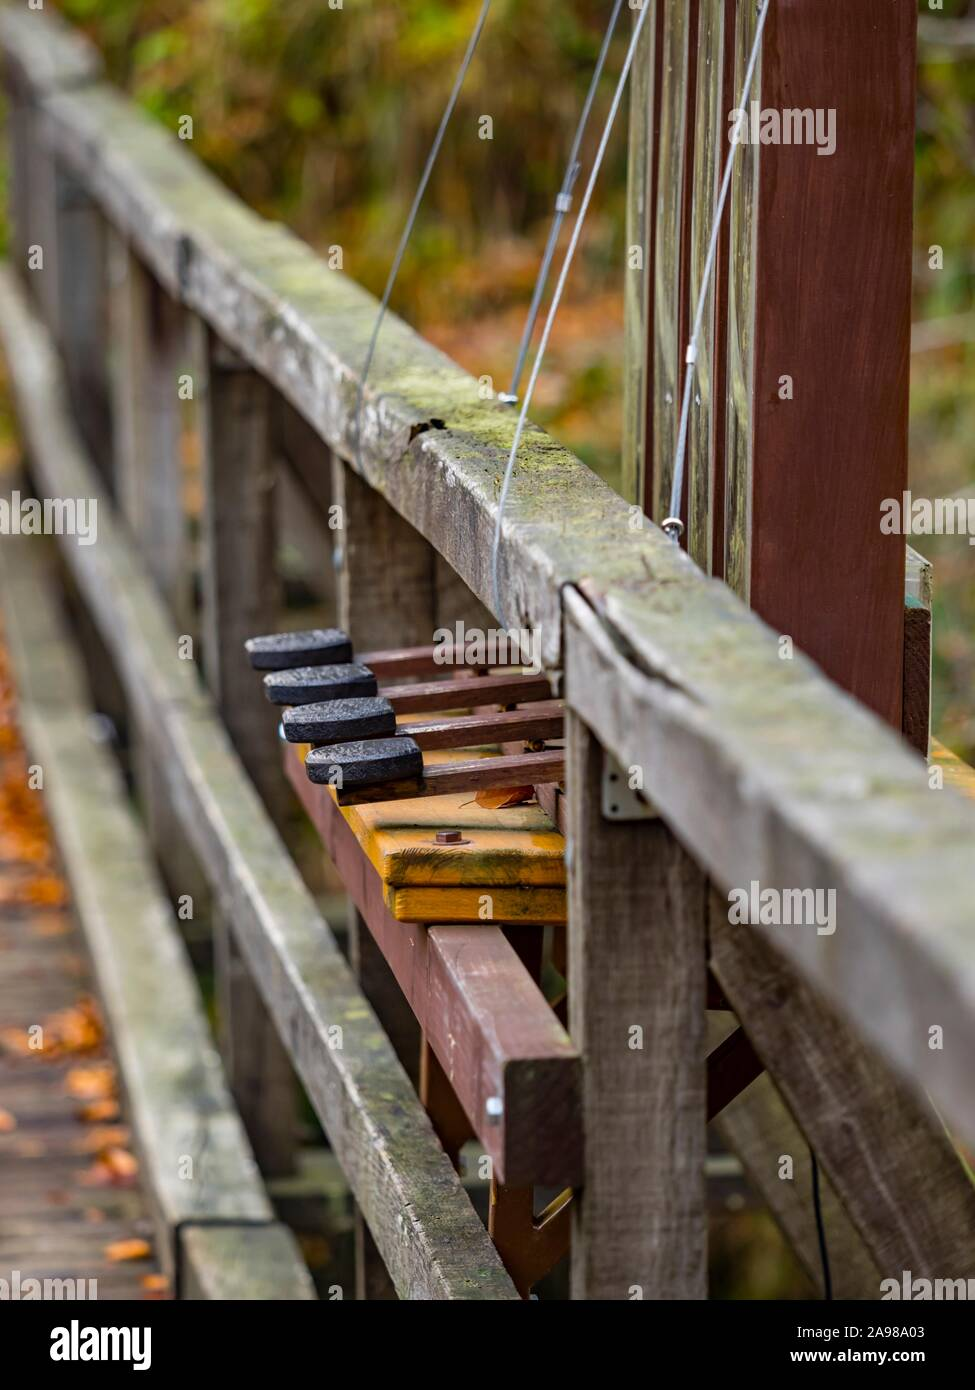 Autumn Fall season in Kamacnik near Vrbovsko in Croatia organ musical instrument mounted on bridge isolated detail keys details Stock Photo